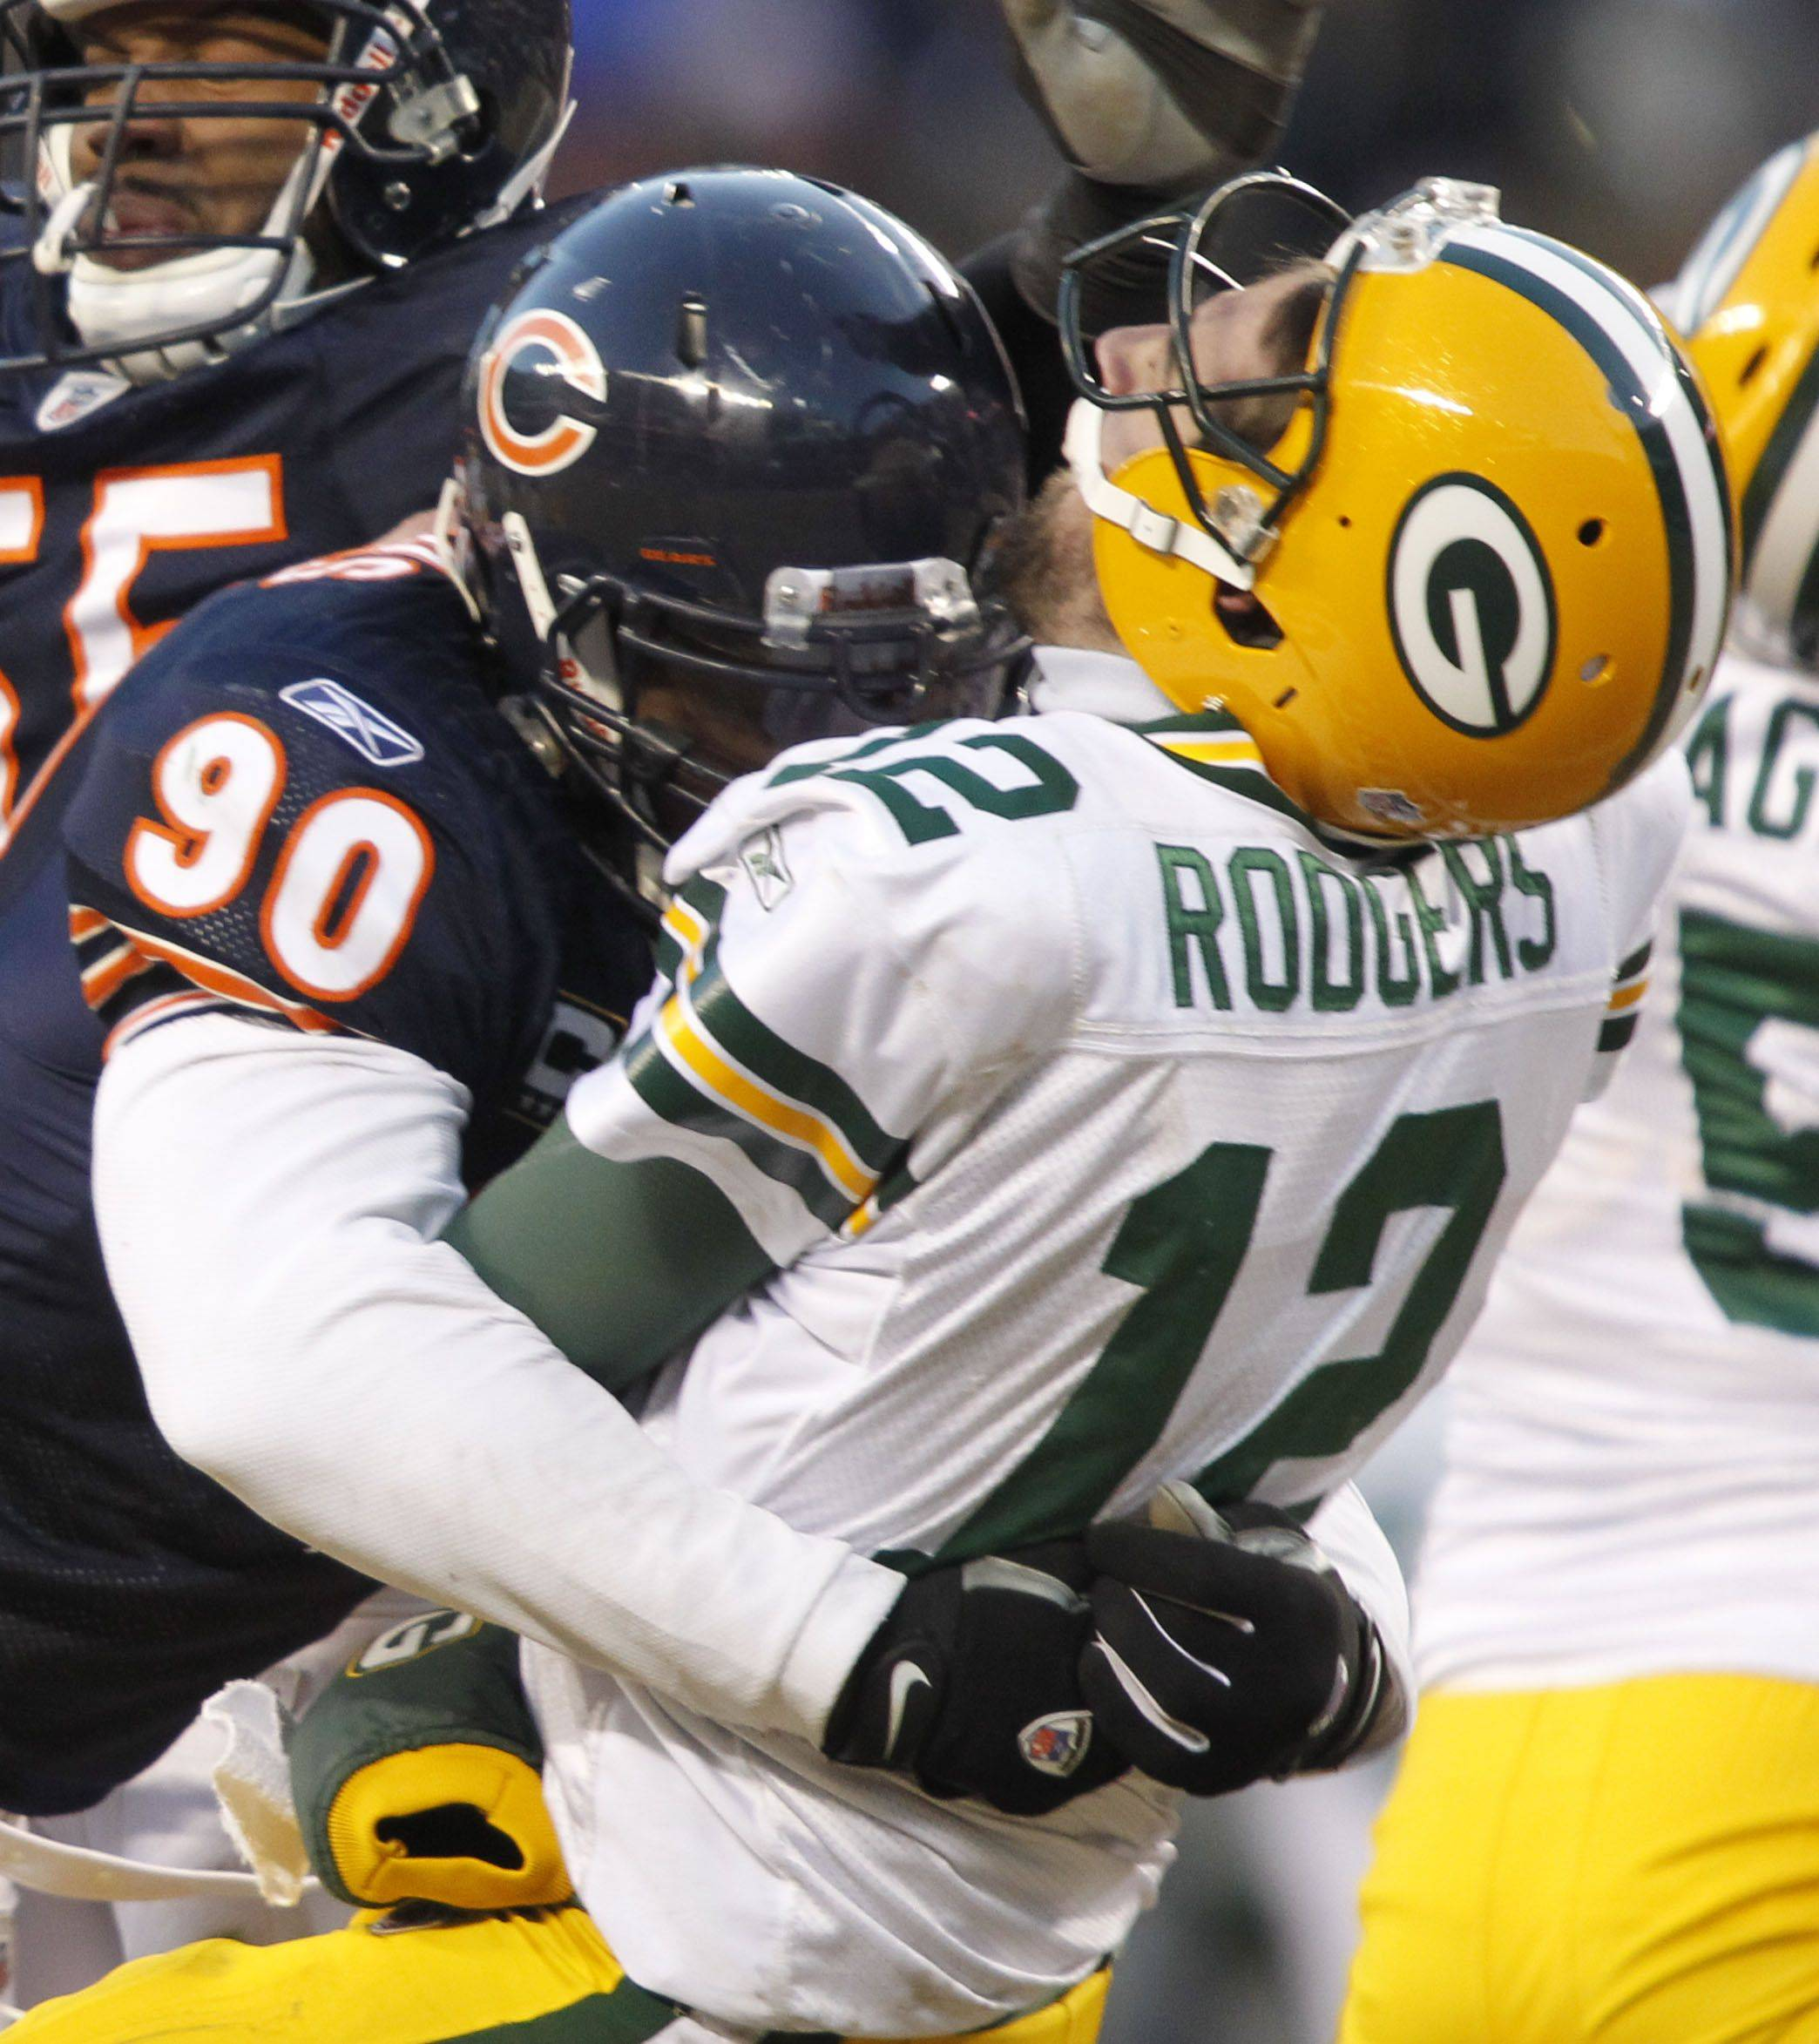 Chicago Bears defensive end Julius Peppers hits Green Bay Packers quarterback Aaron Rodgers during the NFC Championship game between the Chicago Bears and the Green Bay Packers Sunday at Soldier Field in Chicago.